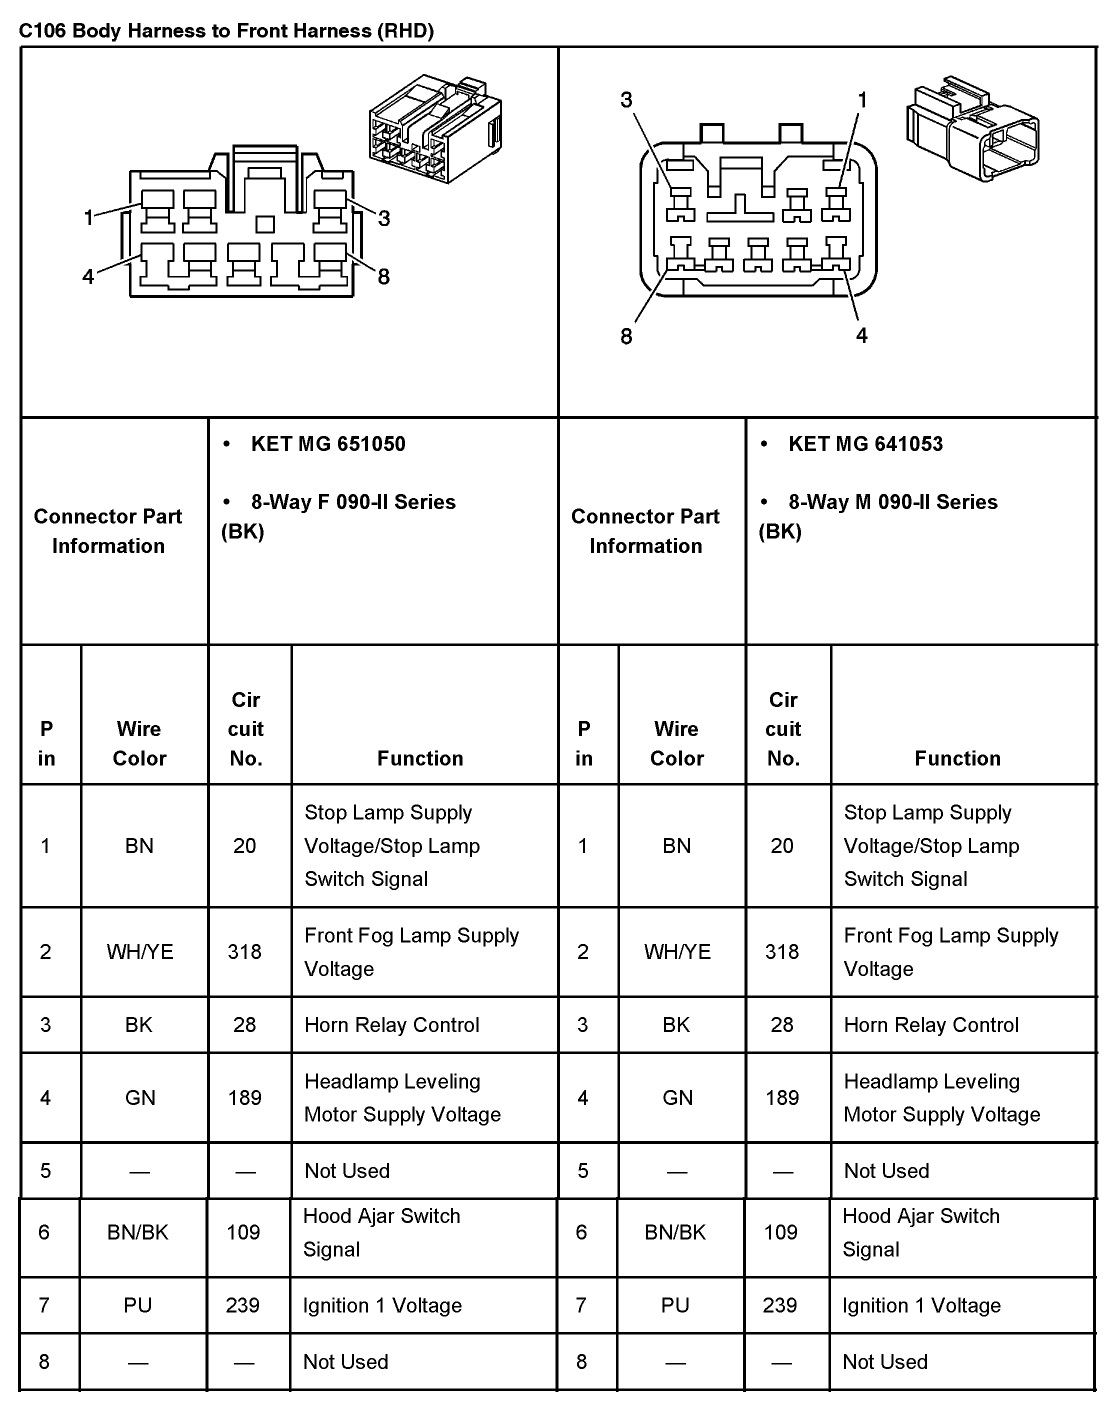 7331d1383704576 2005 aveo master connector list diagrams conn3 jpg 2005 aveo master connector list and diagrams 2007 aveo wiring diagram at fashall.co